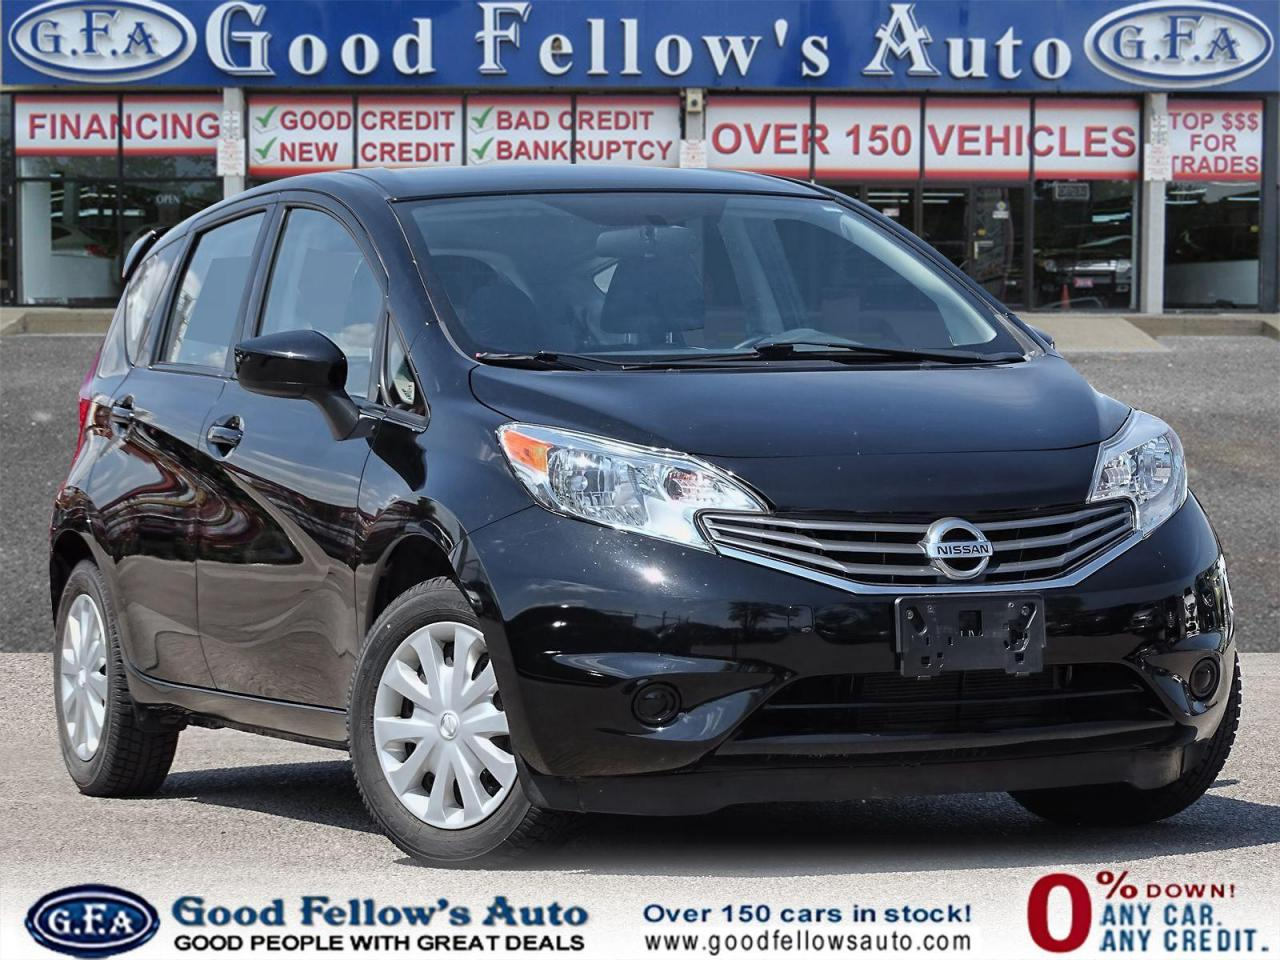 used 2016 Nissan Versa Note car, priced at $8,999